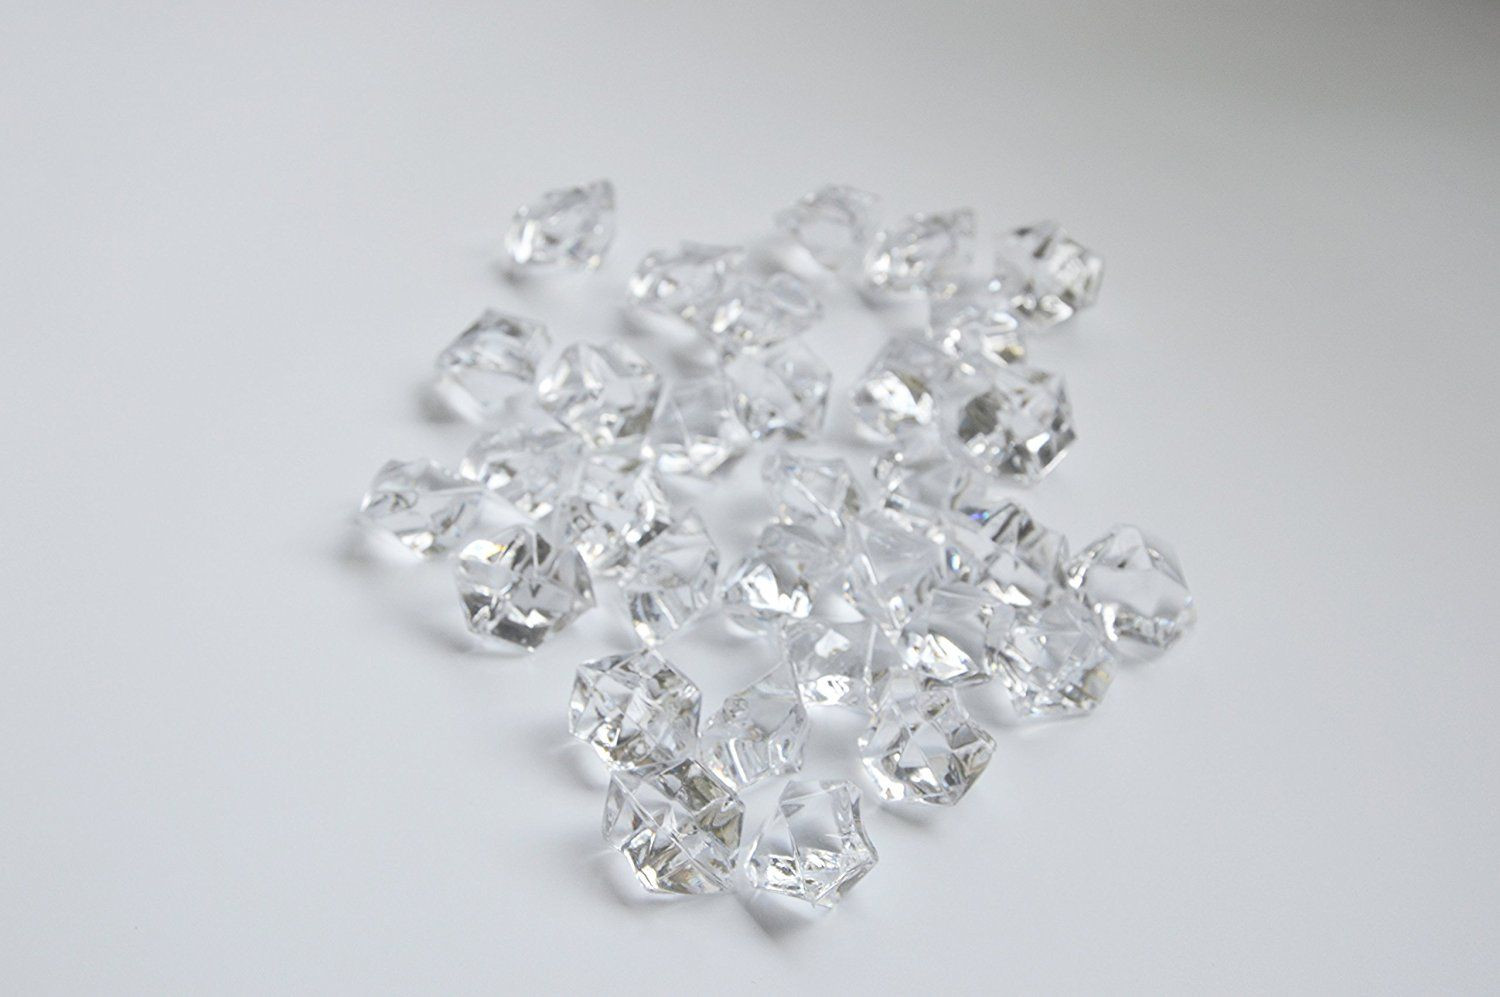 decorative glass gems for vases of hotcandy hyaline acrylic diamonds for party wedding decoration vase regarding hotcandy hyaline acrylic diamonds for party wedding decoration vase aquariam fillers 200 pcs